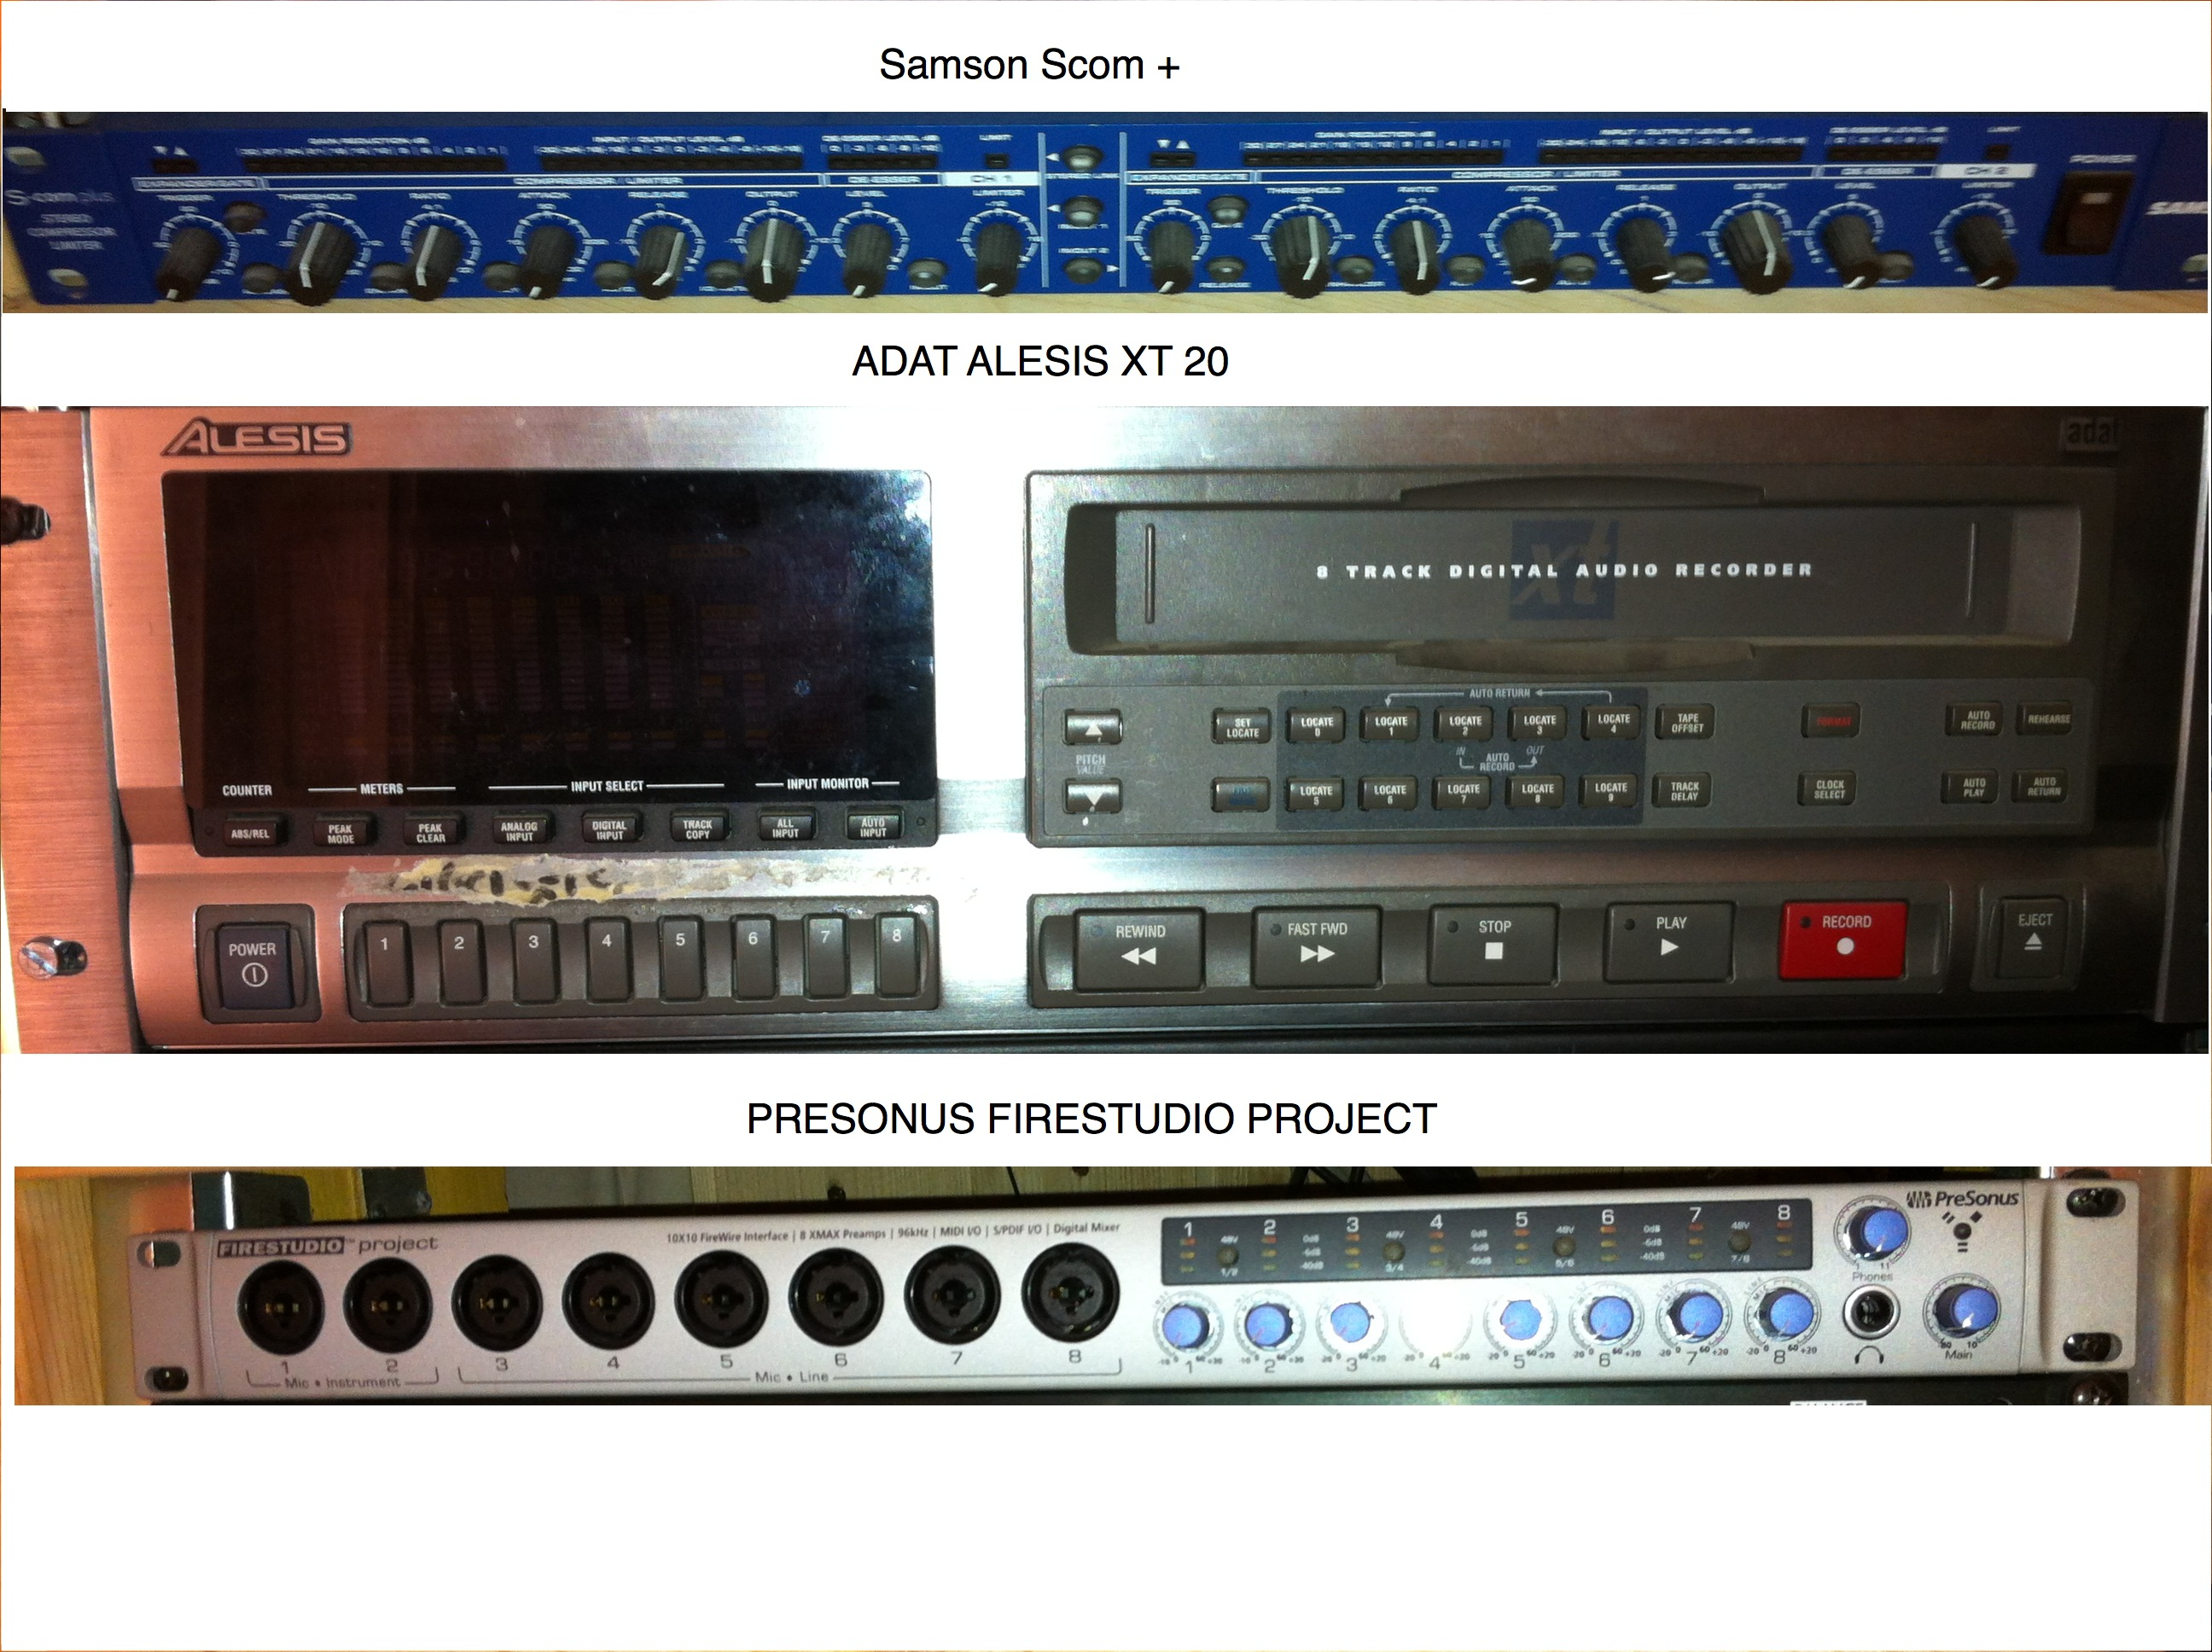 presonus firestudio project Find great deals on ebay for firestudio project and firestudio mobile shop with confidence.